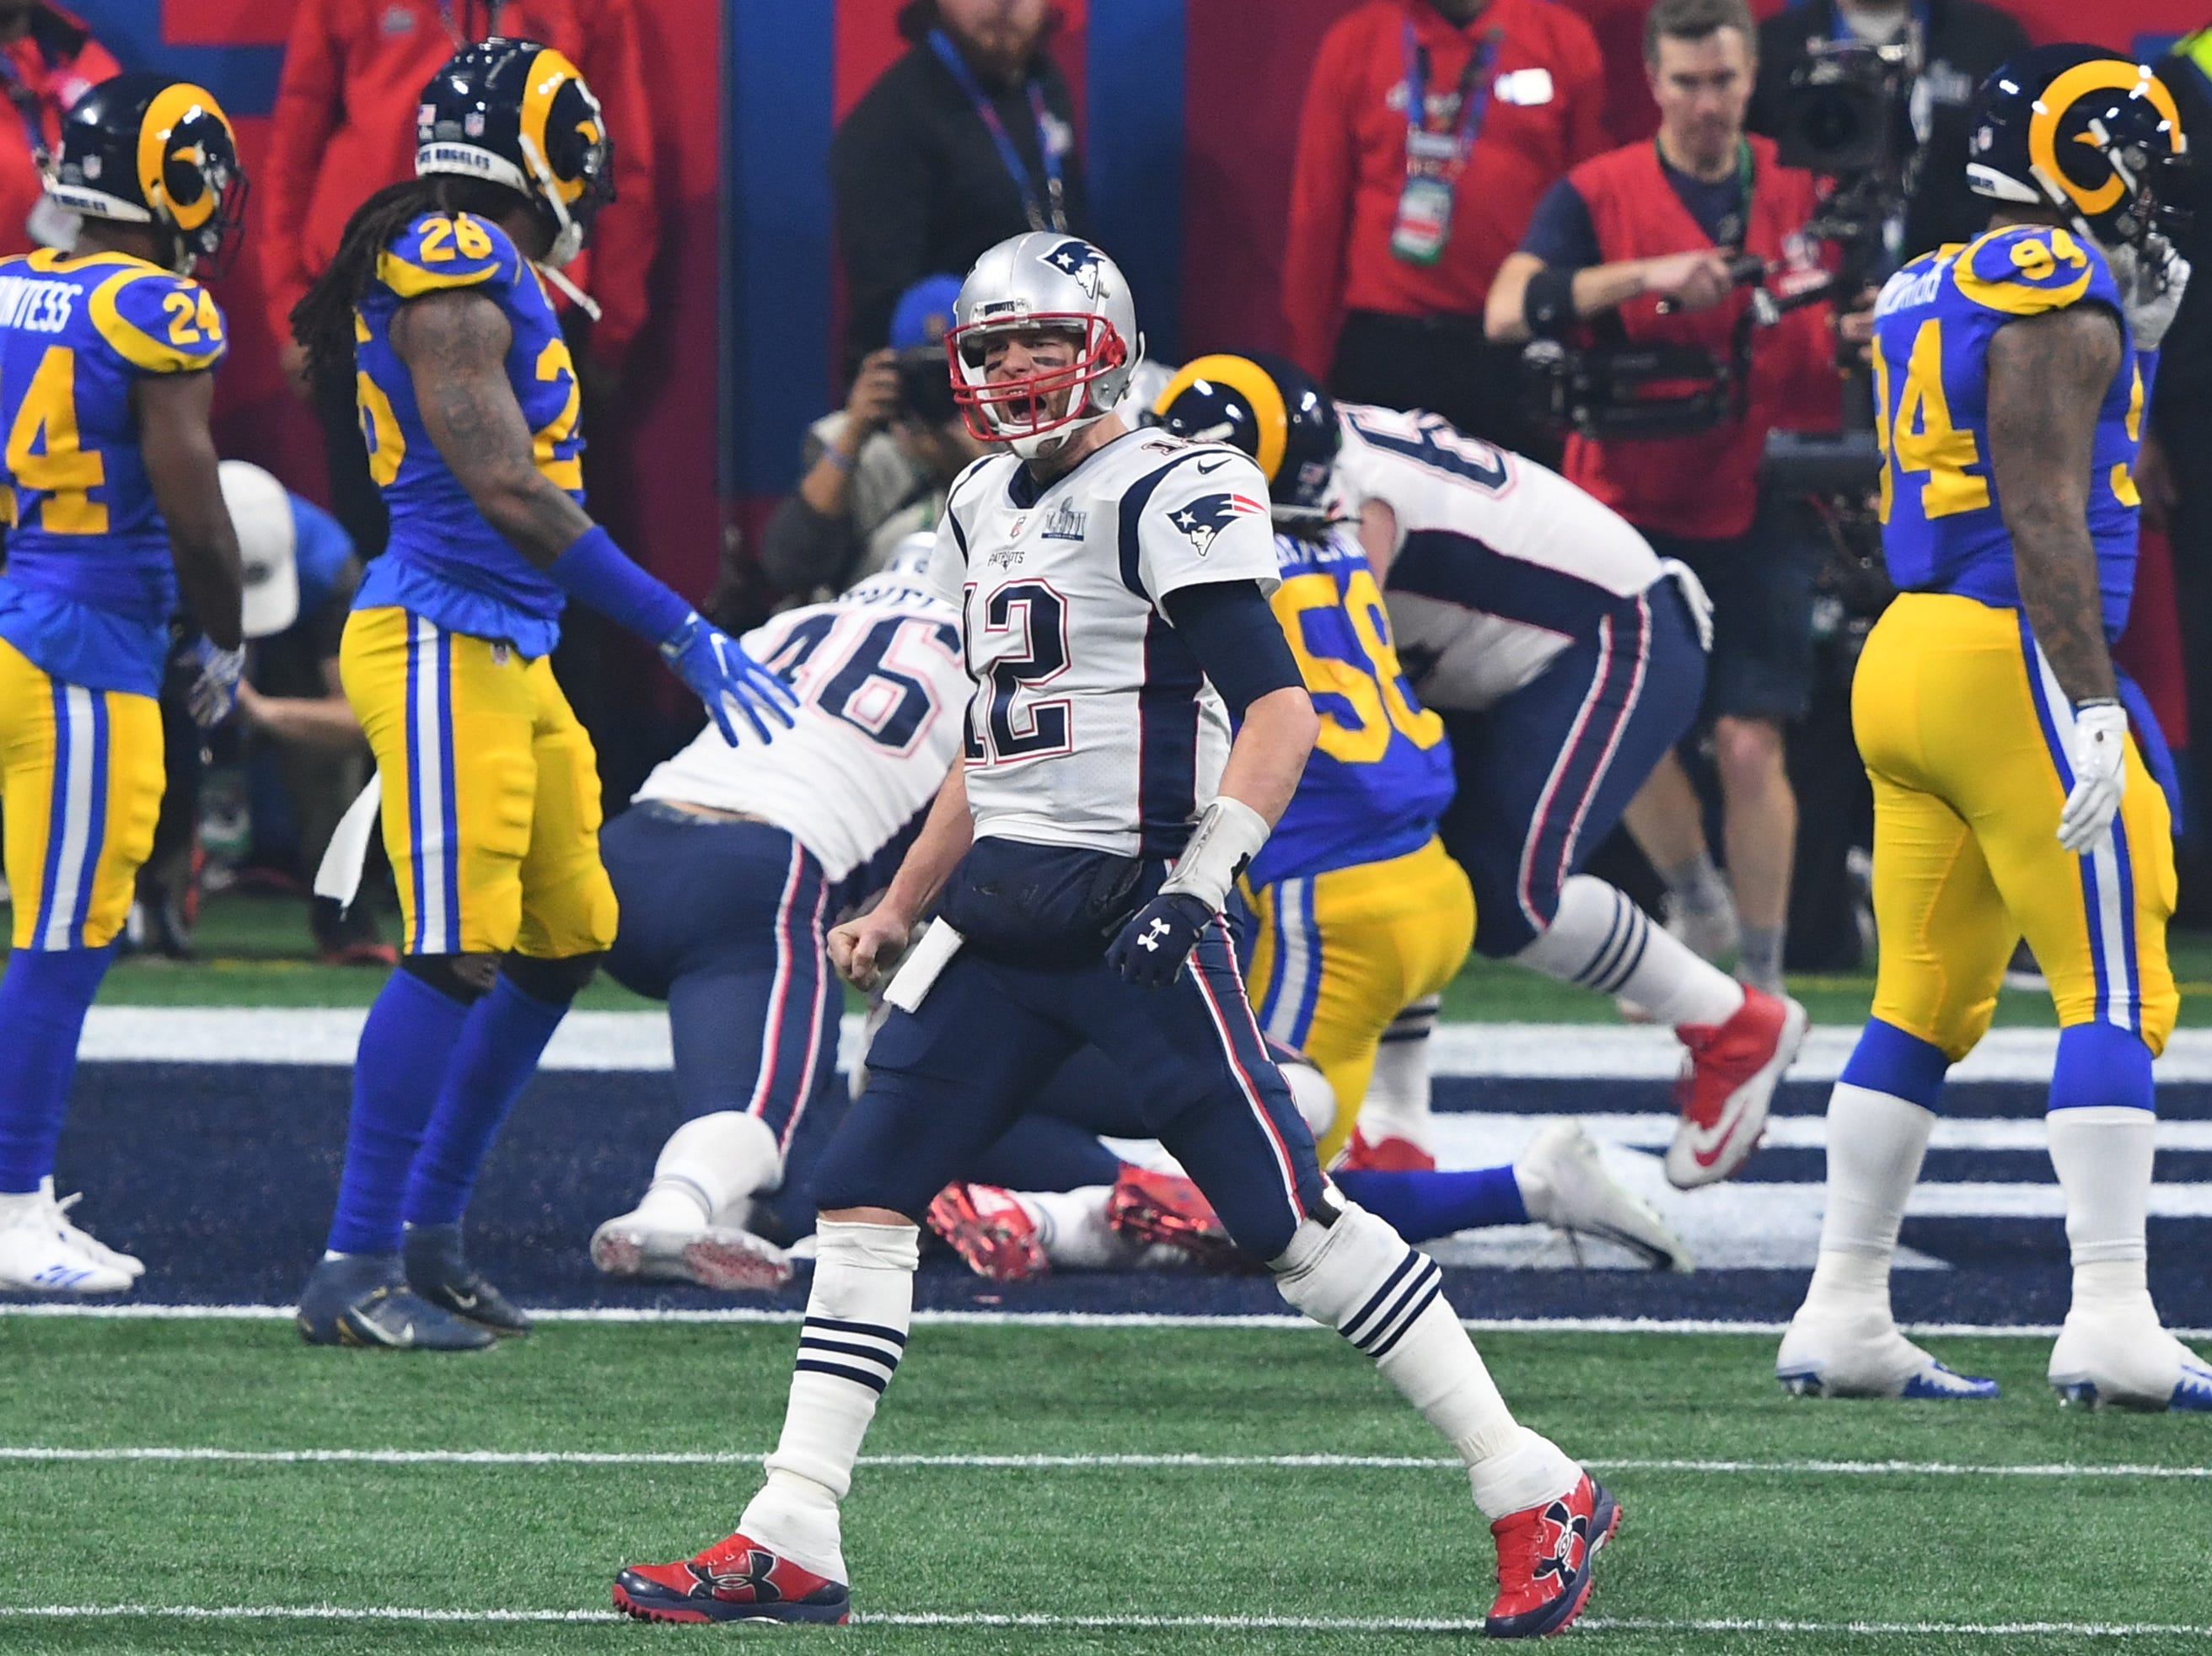 Quarterback Tom Brady (12) celebrates after the Patriots score a rushing touchdown during the fourth quarter of Super Bowl LIII.